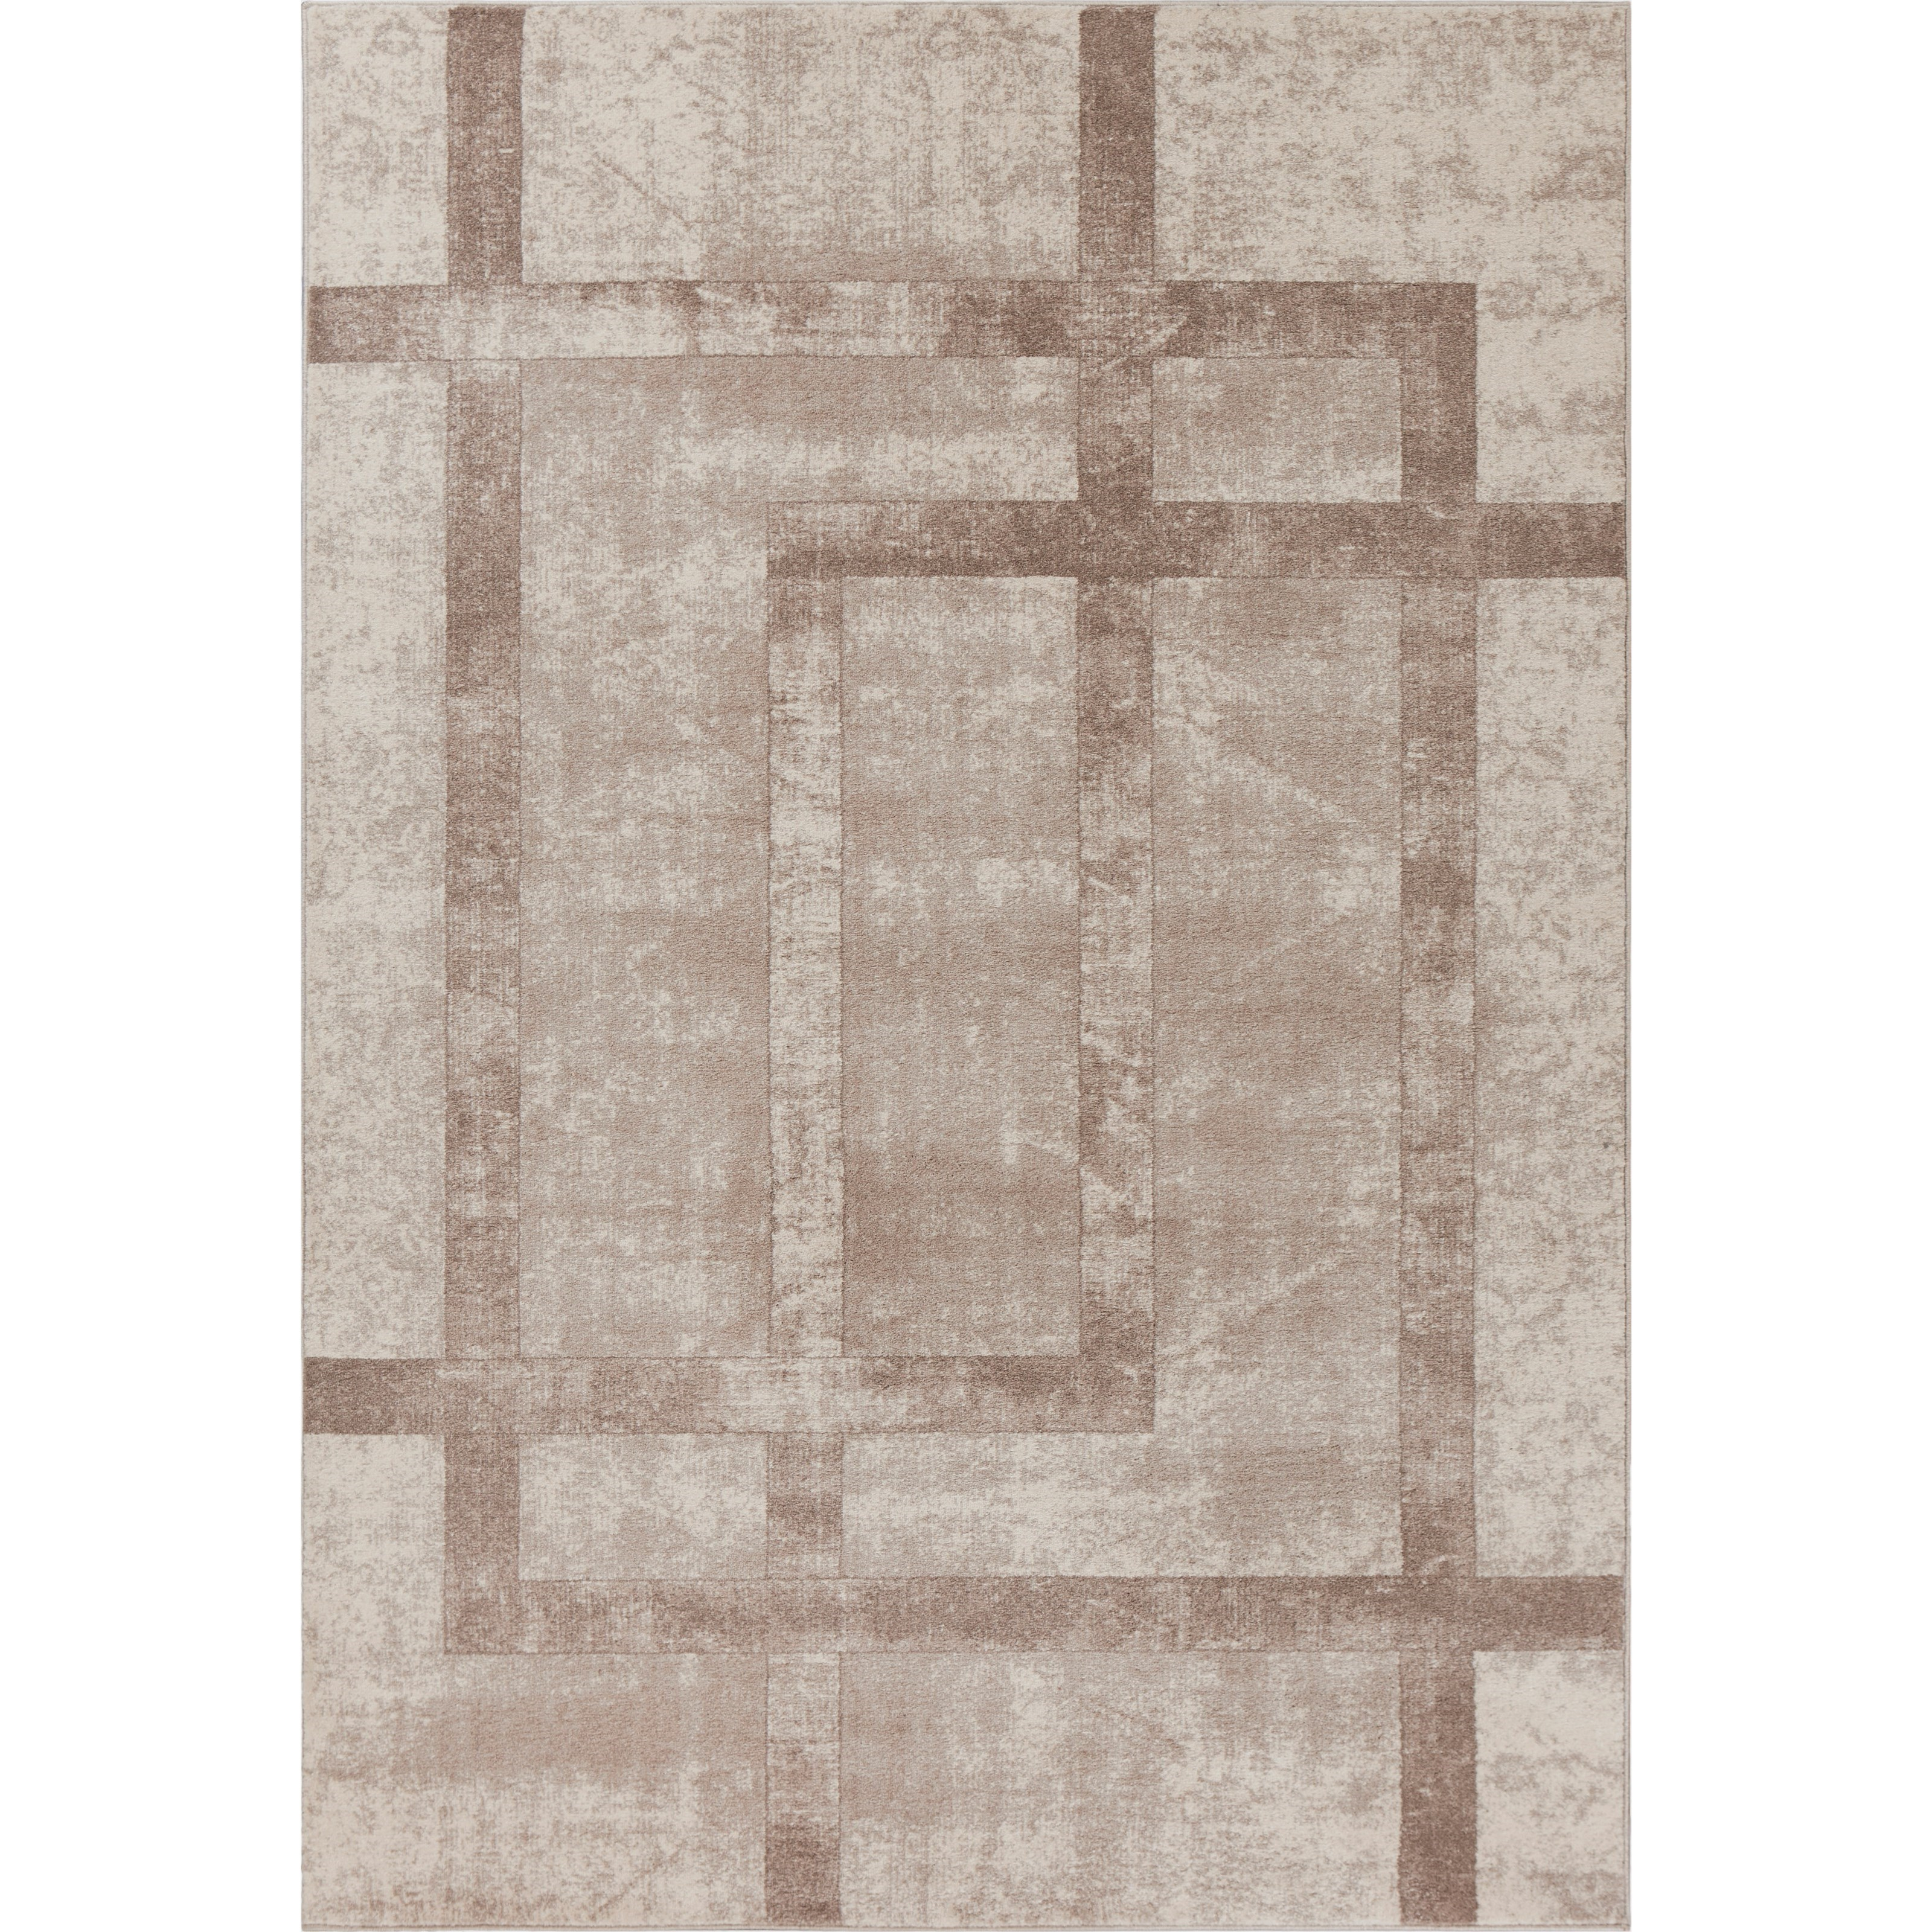 """Libby Langdon Winston 10'10"""" X 7'7"""" Area Rug by Kas at Wilson's Furniture"""